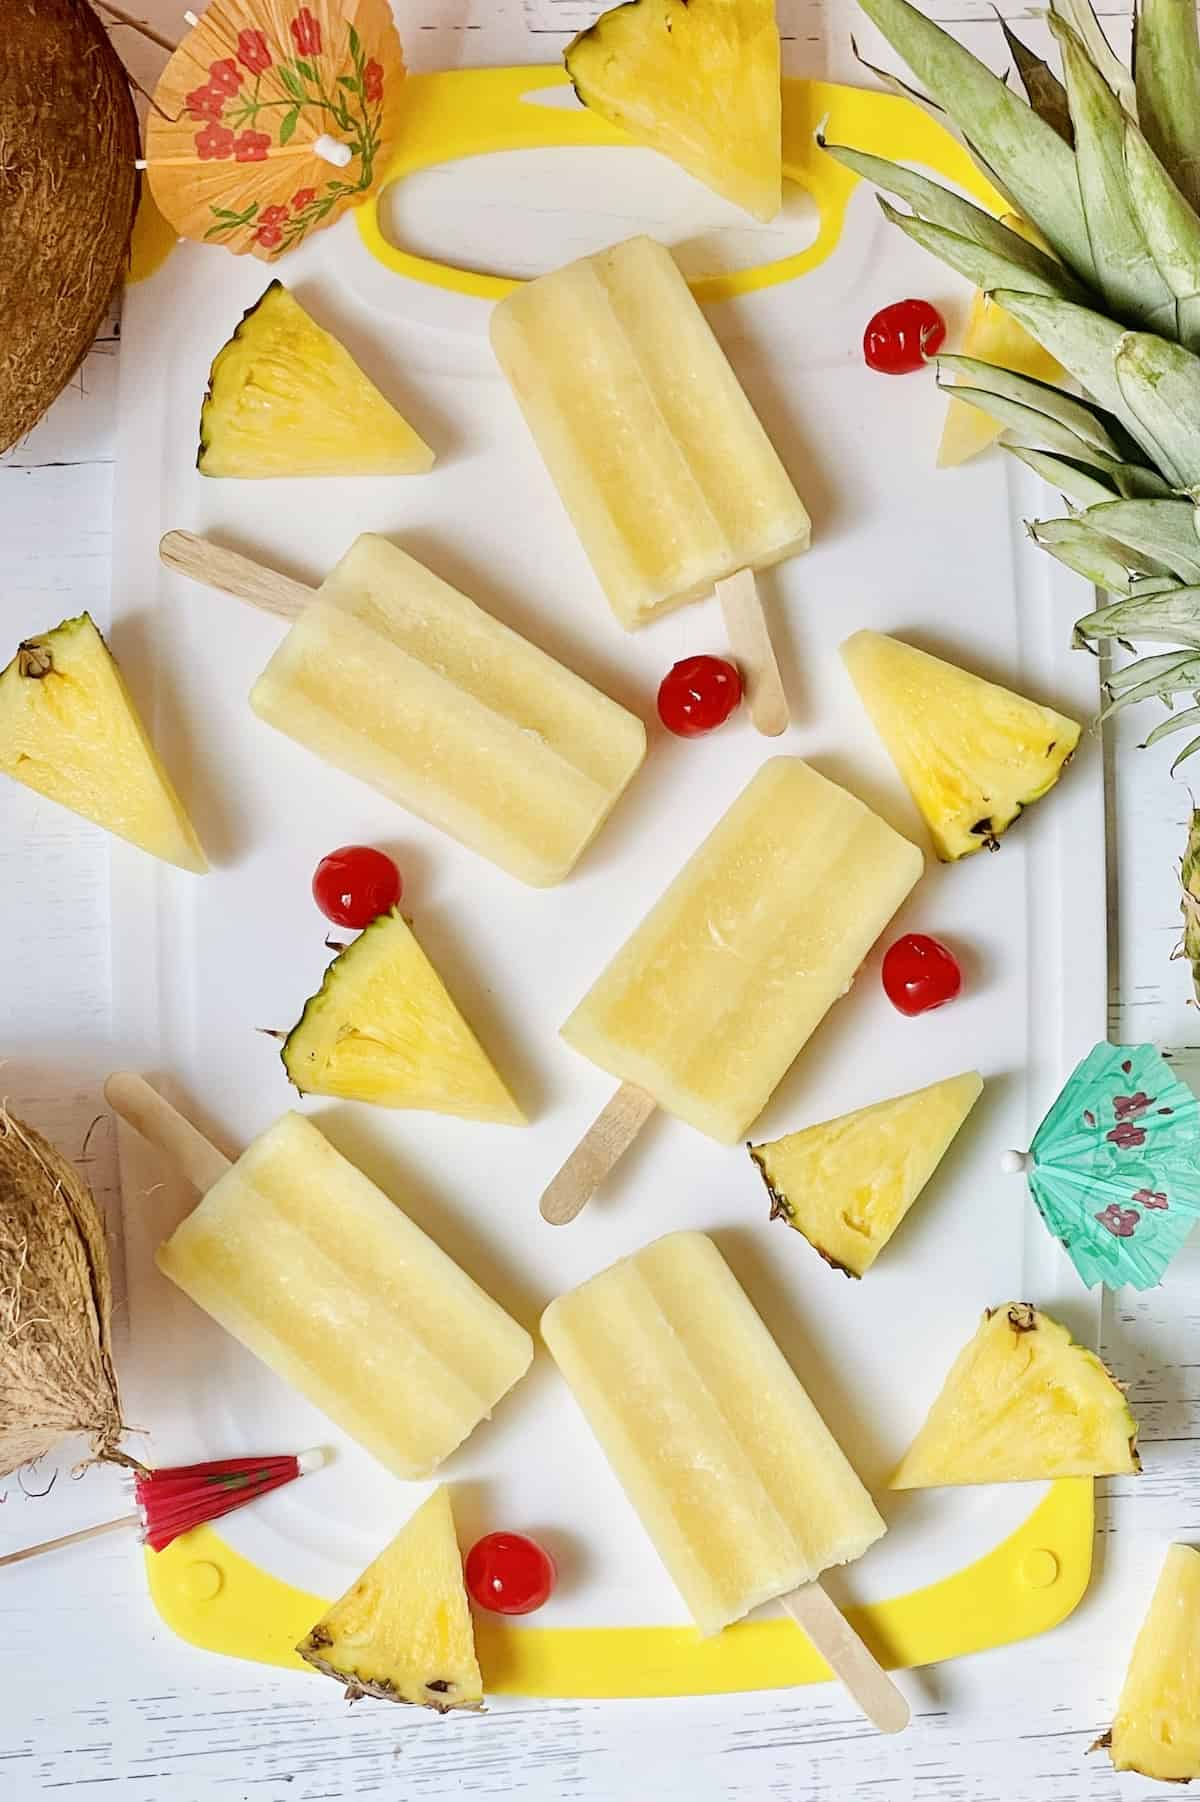 pina colada popsicles on a cutting board surrounded by cherries and pineapple slices